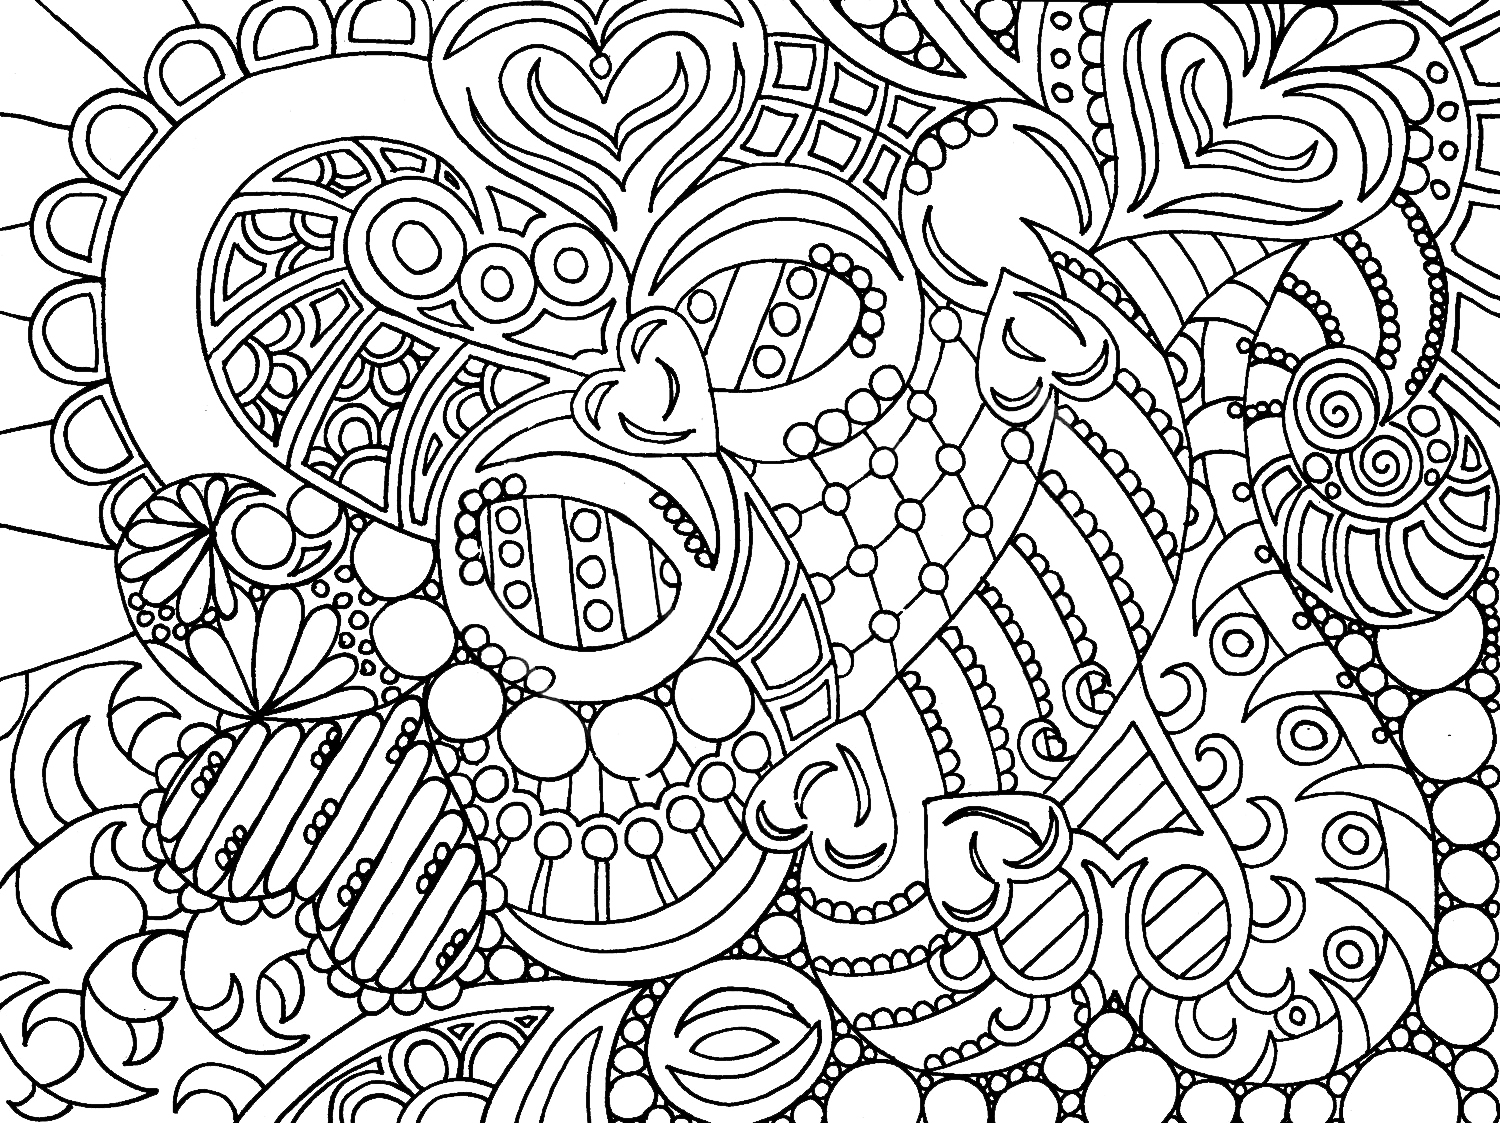 coloring pages o - free coloring pages for adults only coloring pages